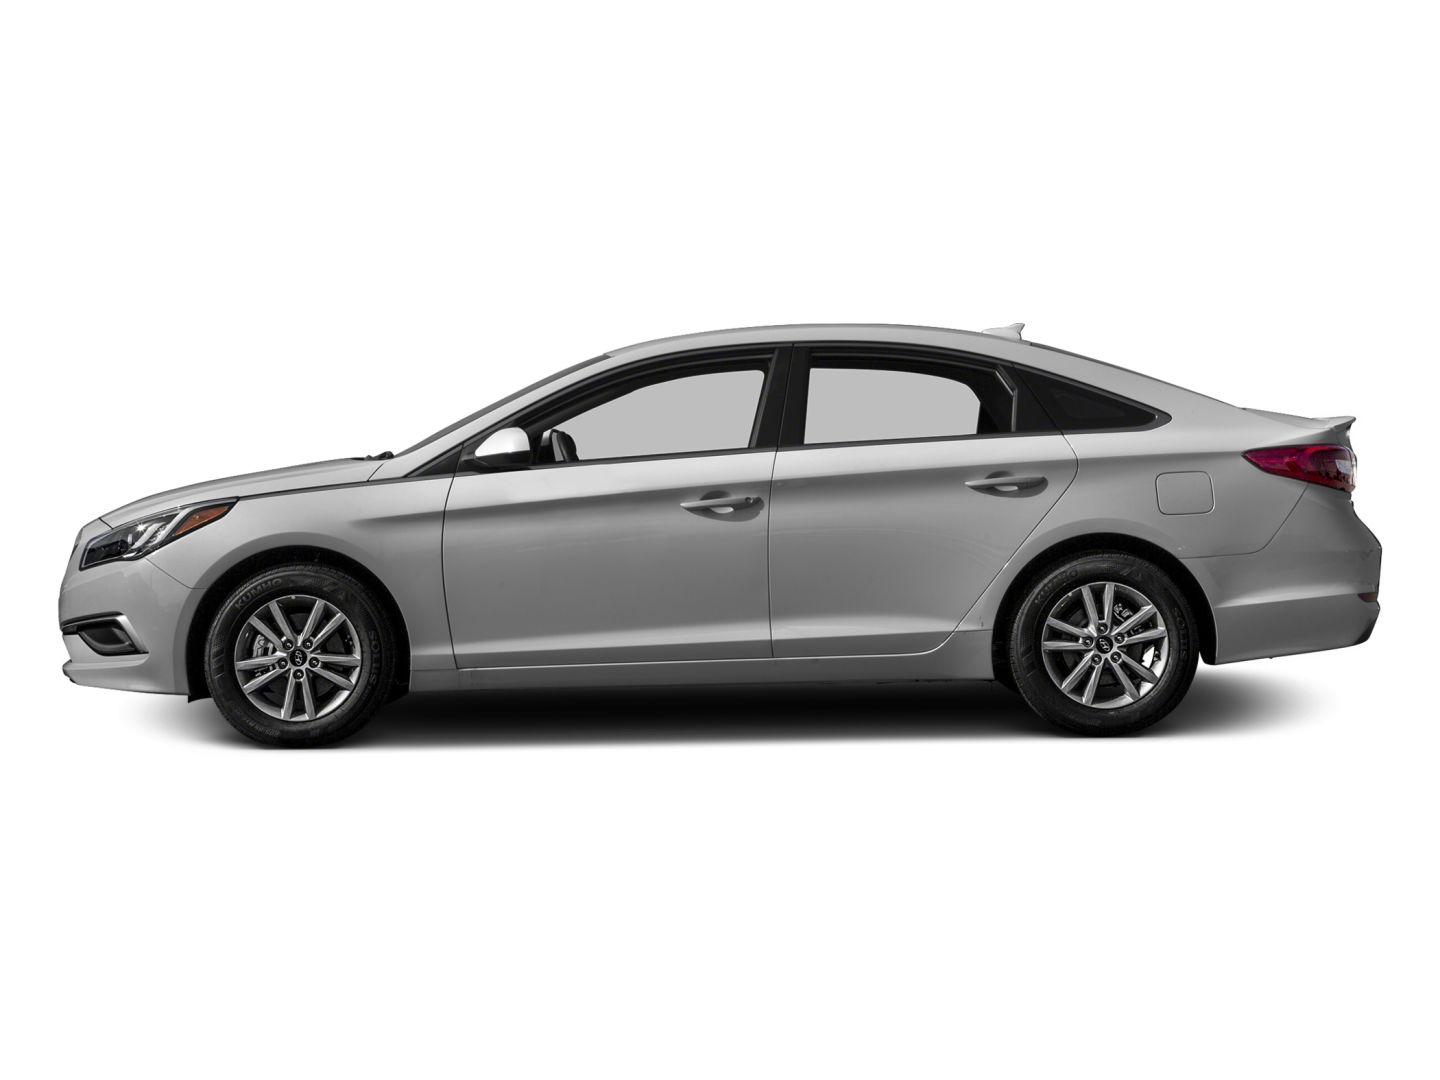 2016 Hyundai Sonata 2.4L GLS for sale in Edmonton, Alberta